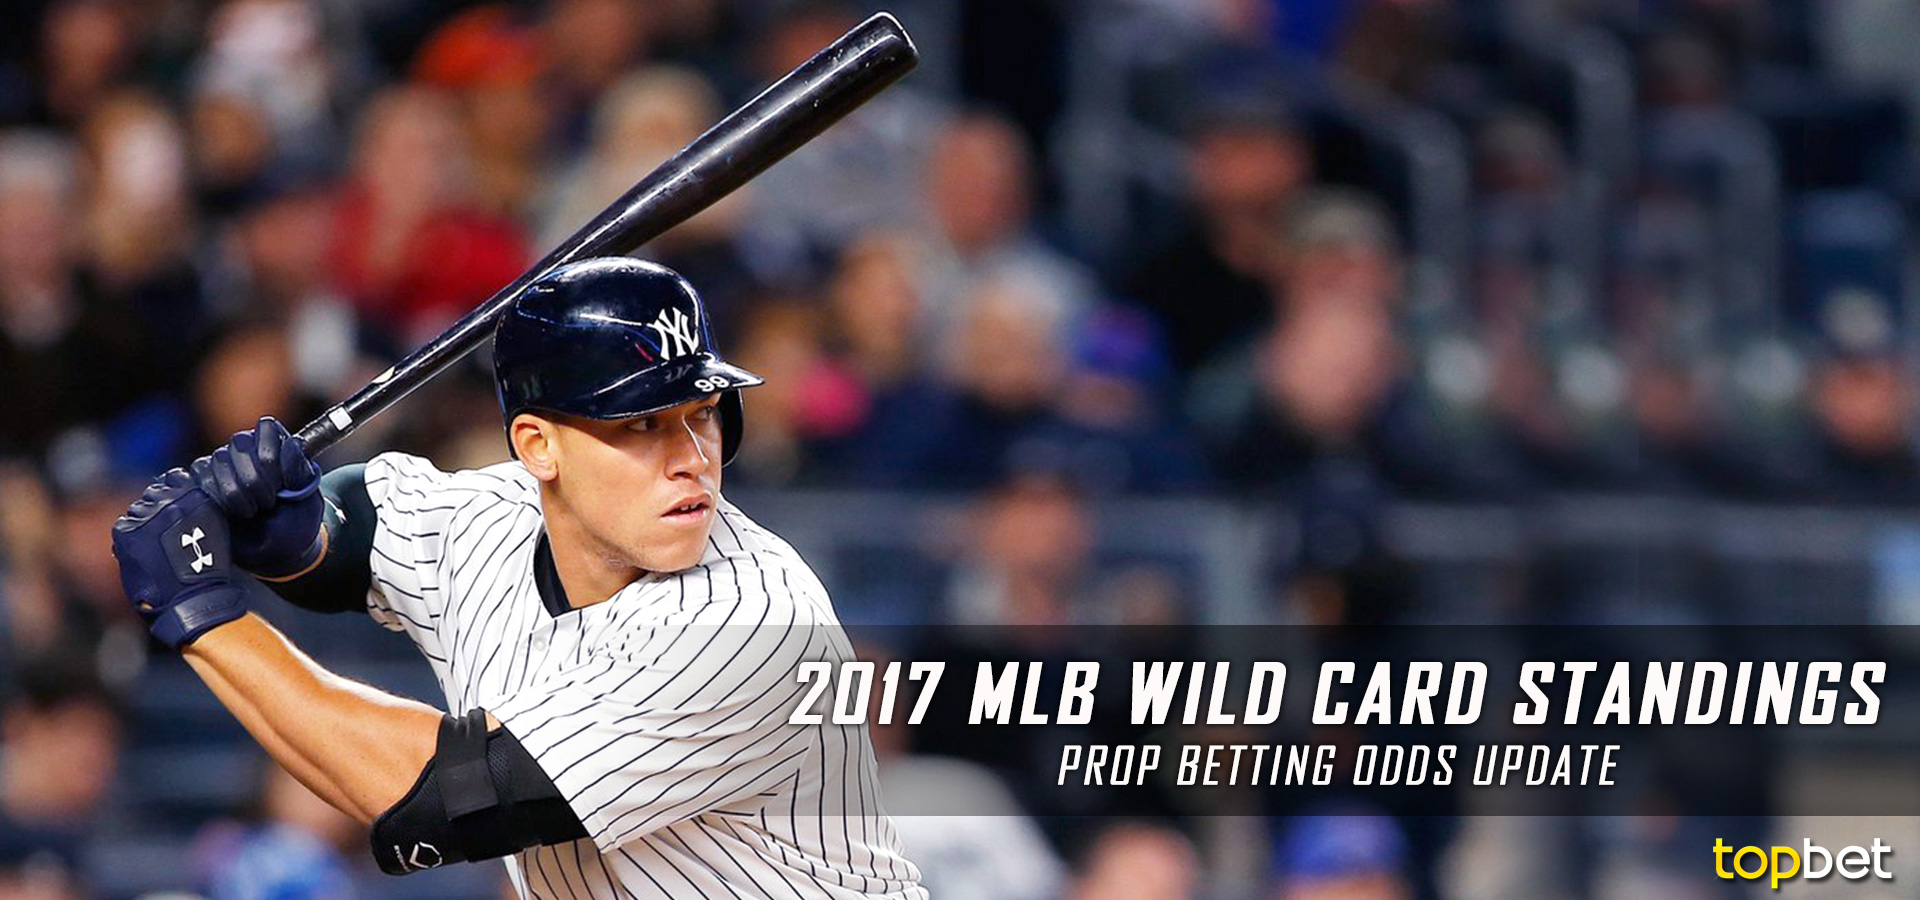 2017 Mlb Wild Card Standings Prop Betting Odds Update